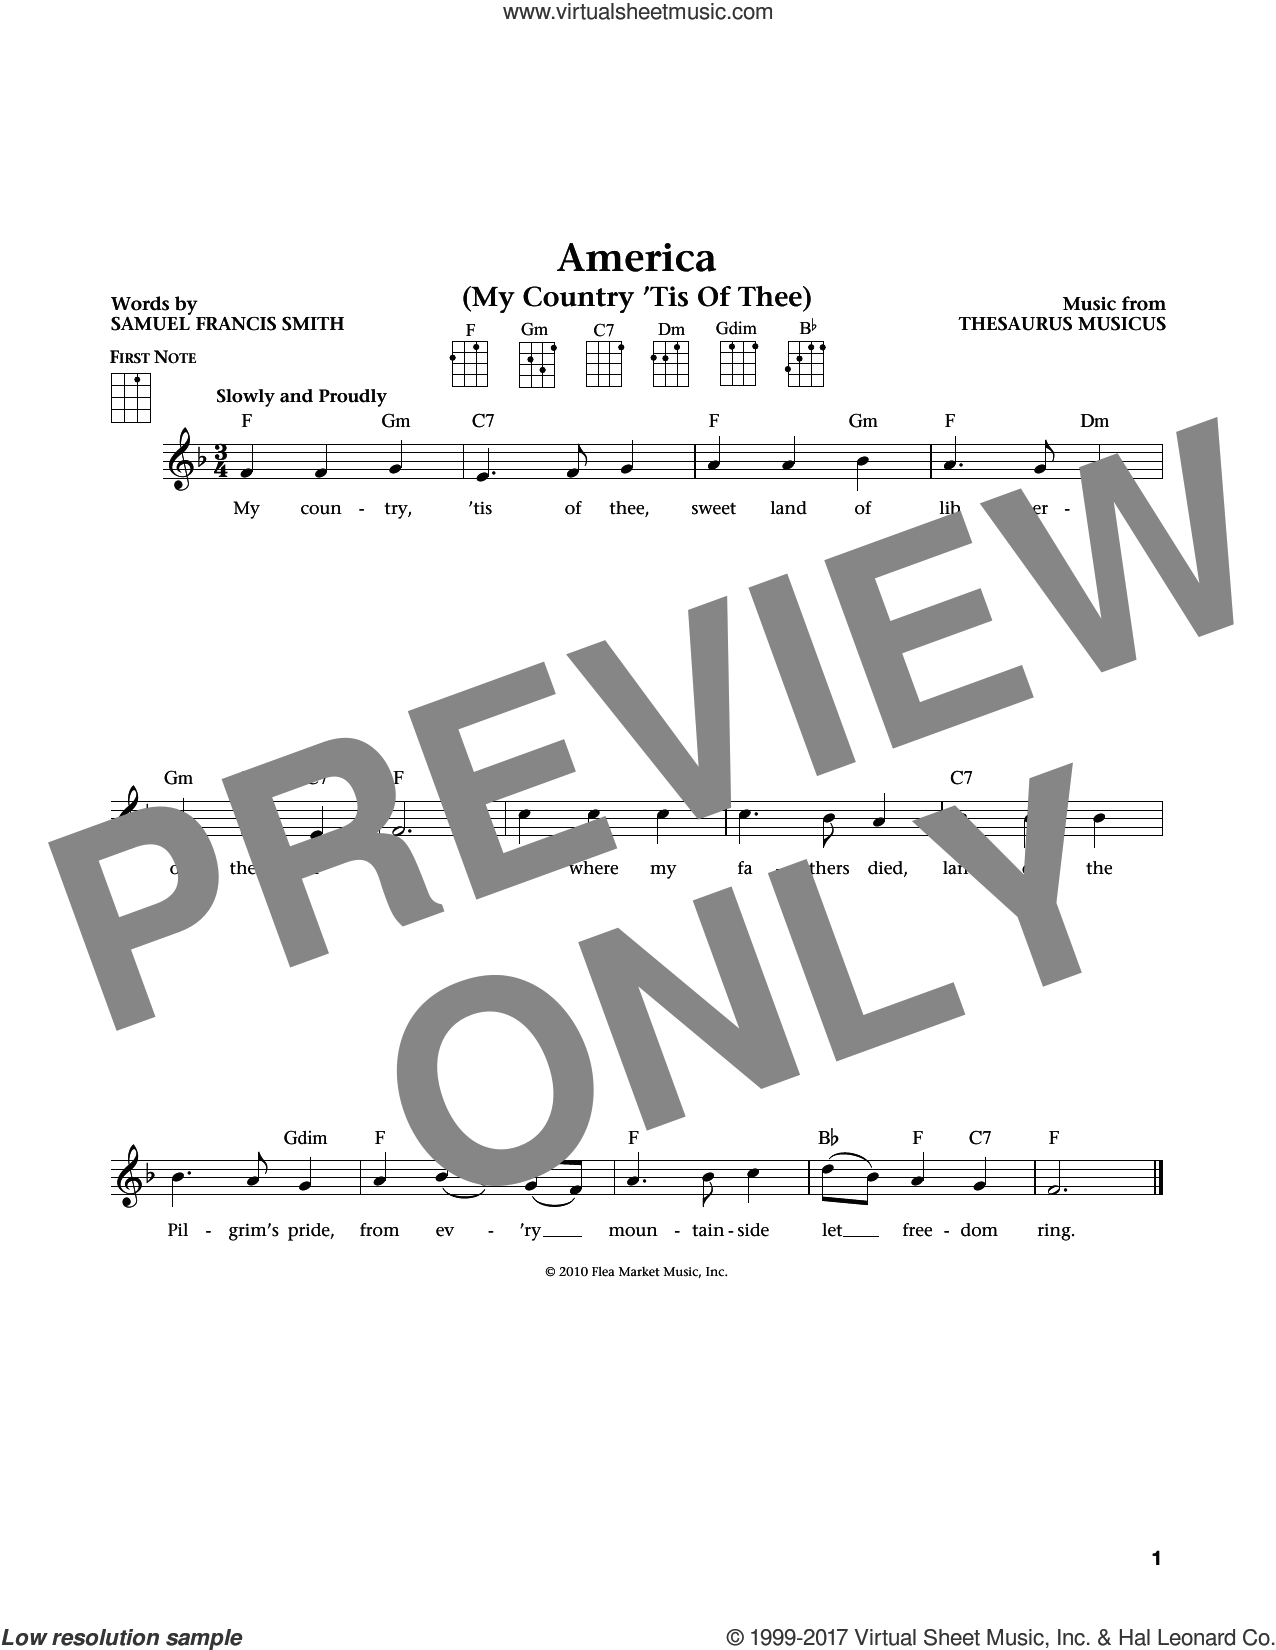 My Country, 'Tis Of Thee (America) sheet music for ukulele by Thesaurus Musicus and Samuel Francis Smith, intermediate ukulele. Score Image Preview.